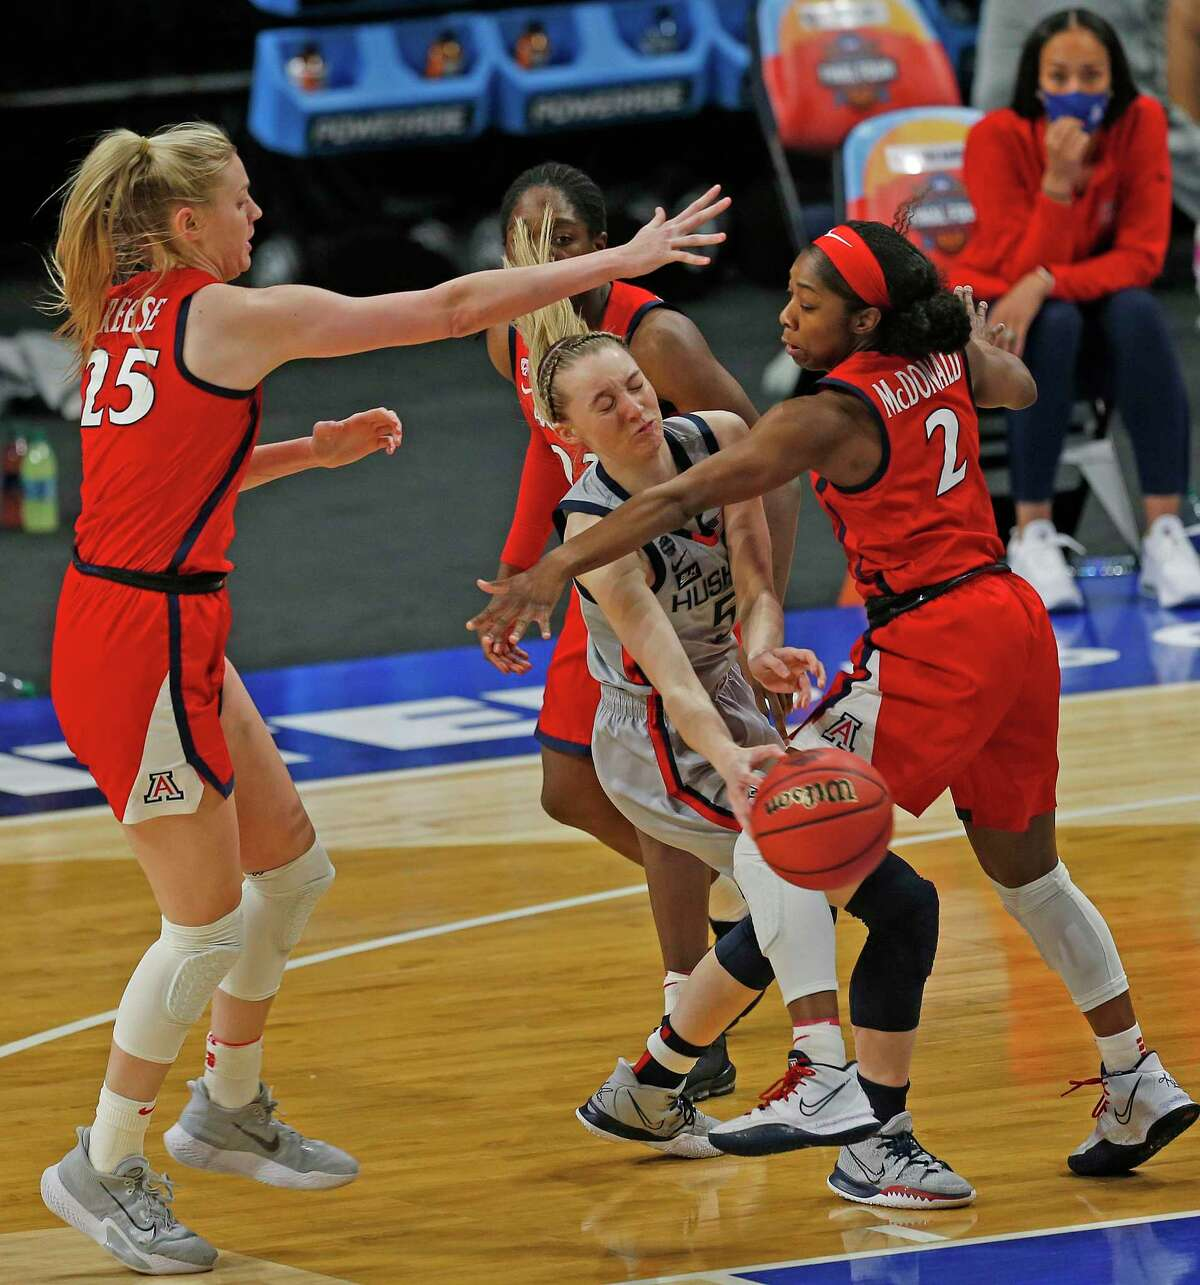 UConn guard Paige Bueckers (5) is trapped by Arizona guard Aari McDonald (2) and Arizona forward Cate Reese (25) in the first half on Friday, April 2, 2021 at the Alamodome.